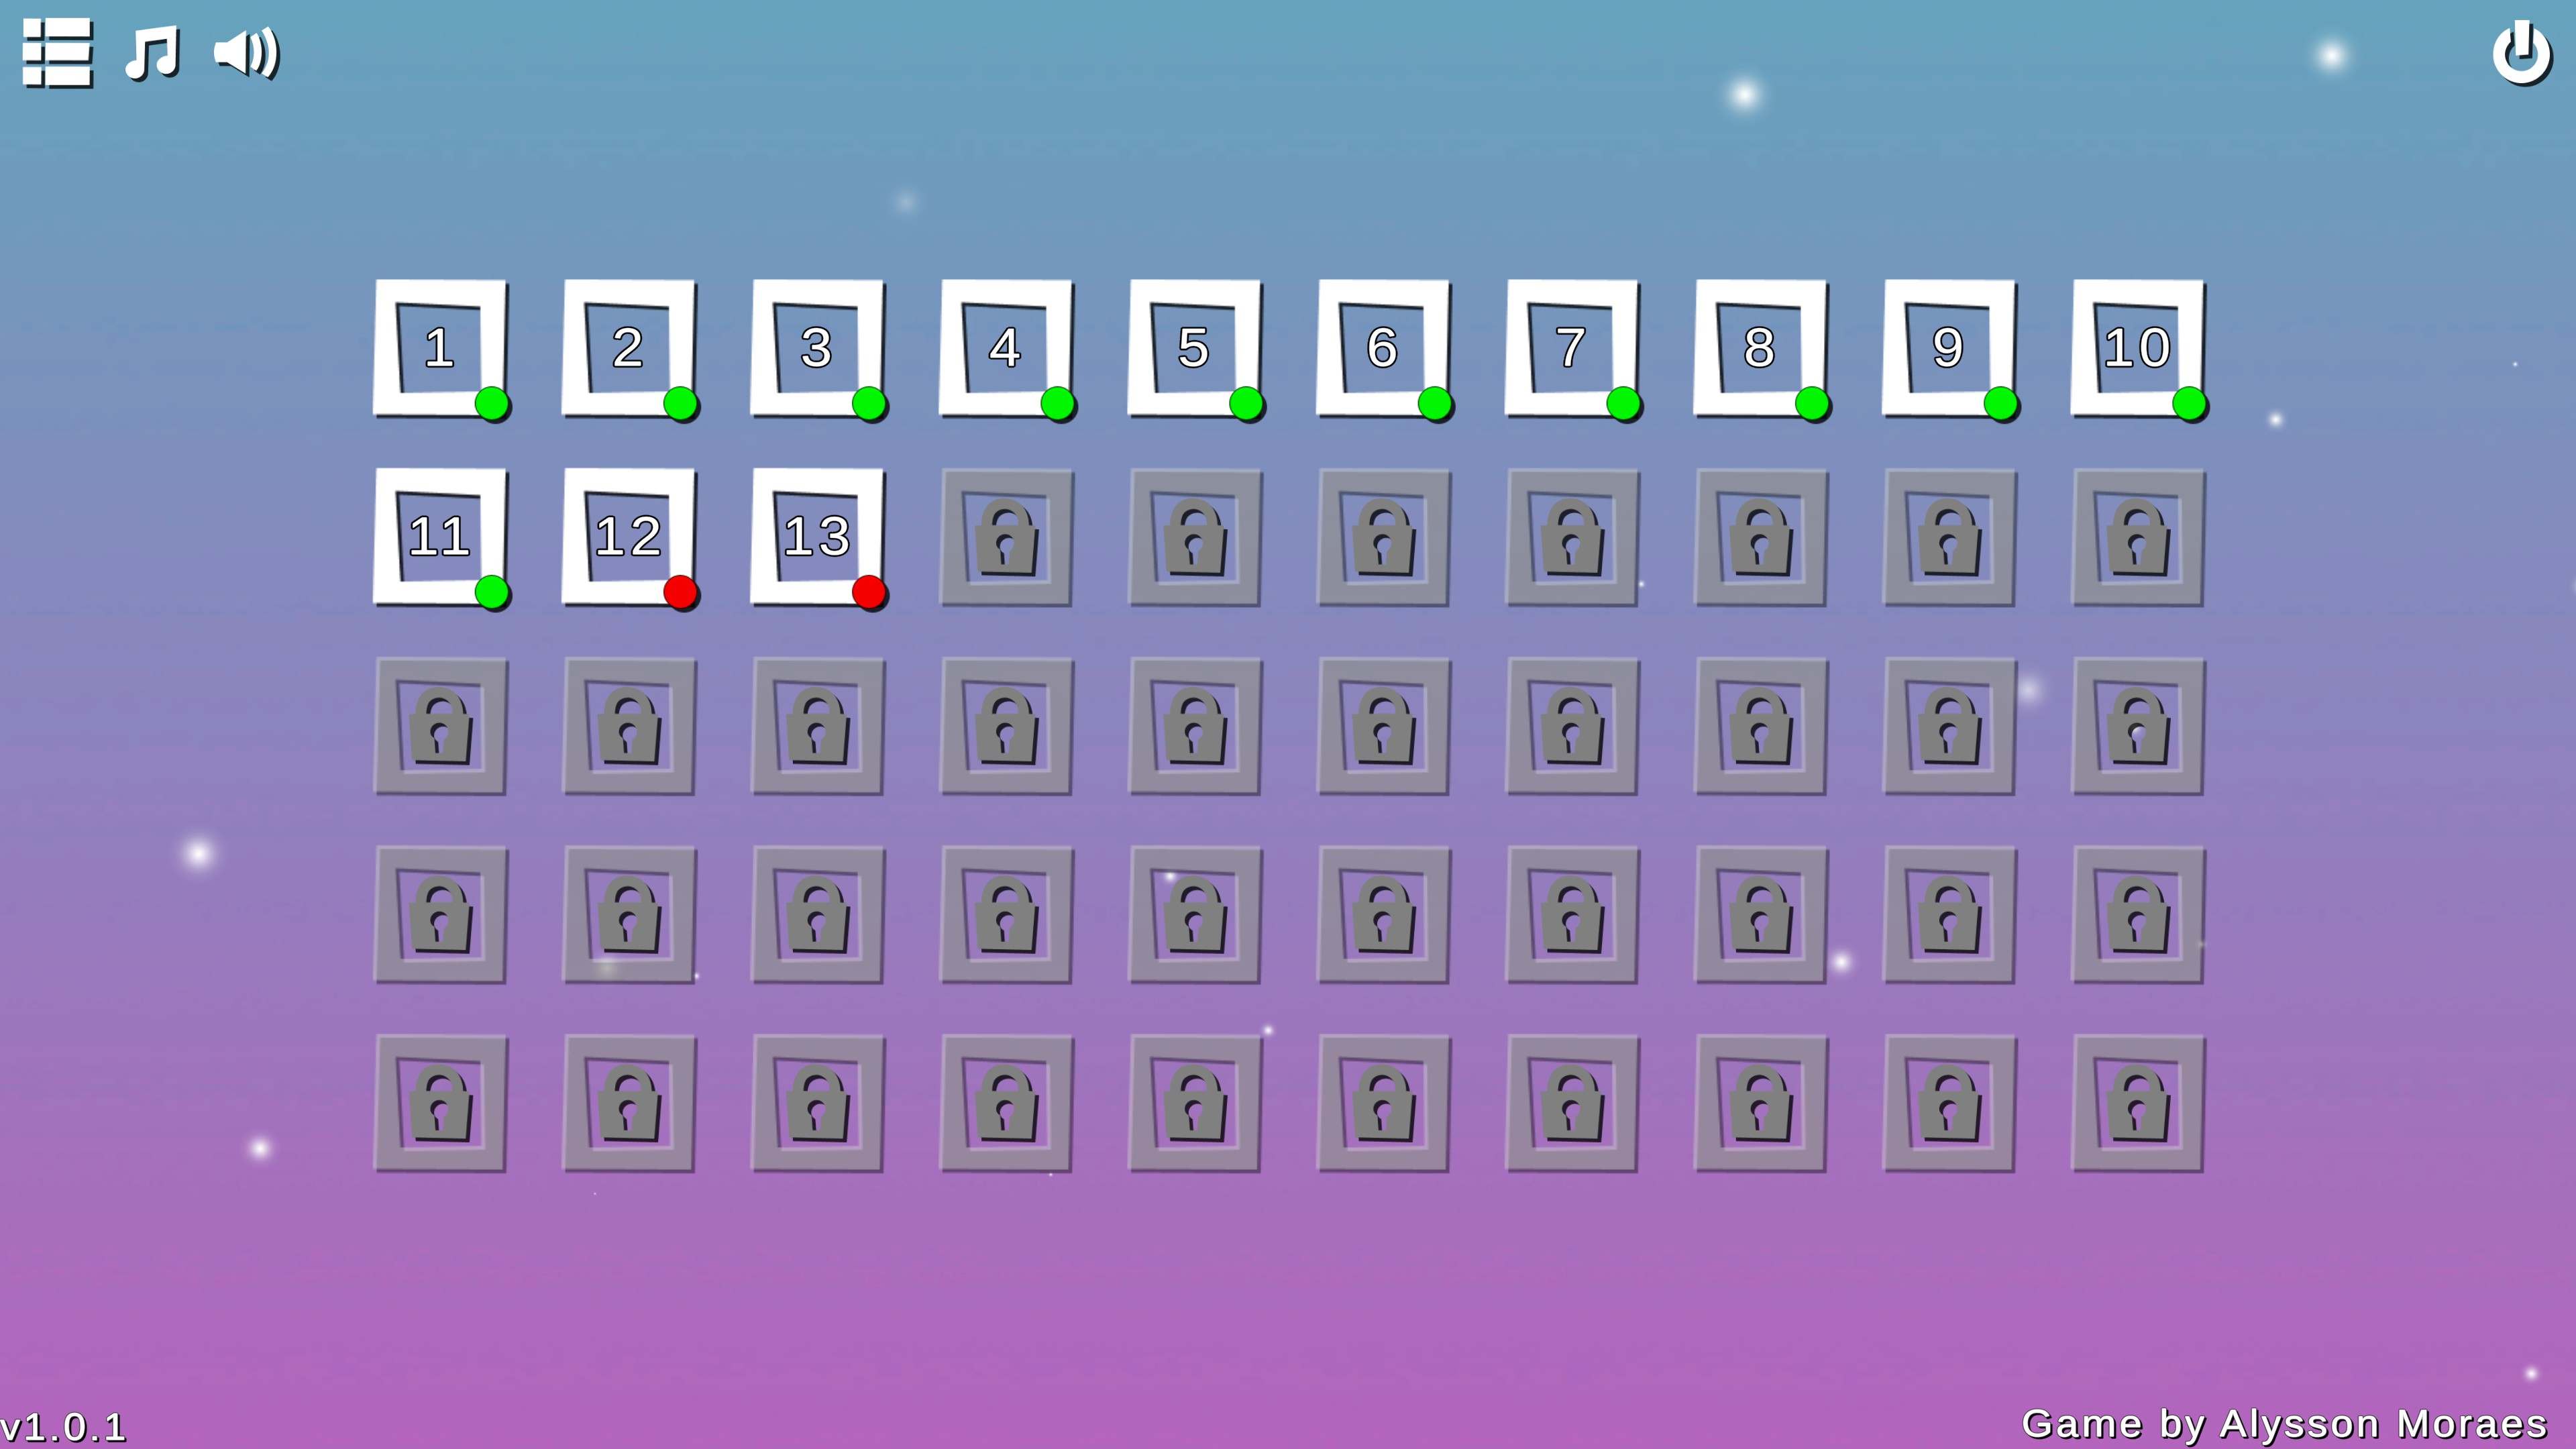 Puzzle Car. Level select showing 50 levels. 13 of them are unlocked and of those 13, 11 have green dots showing they have been completed perfectly.